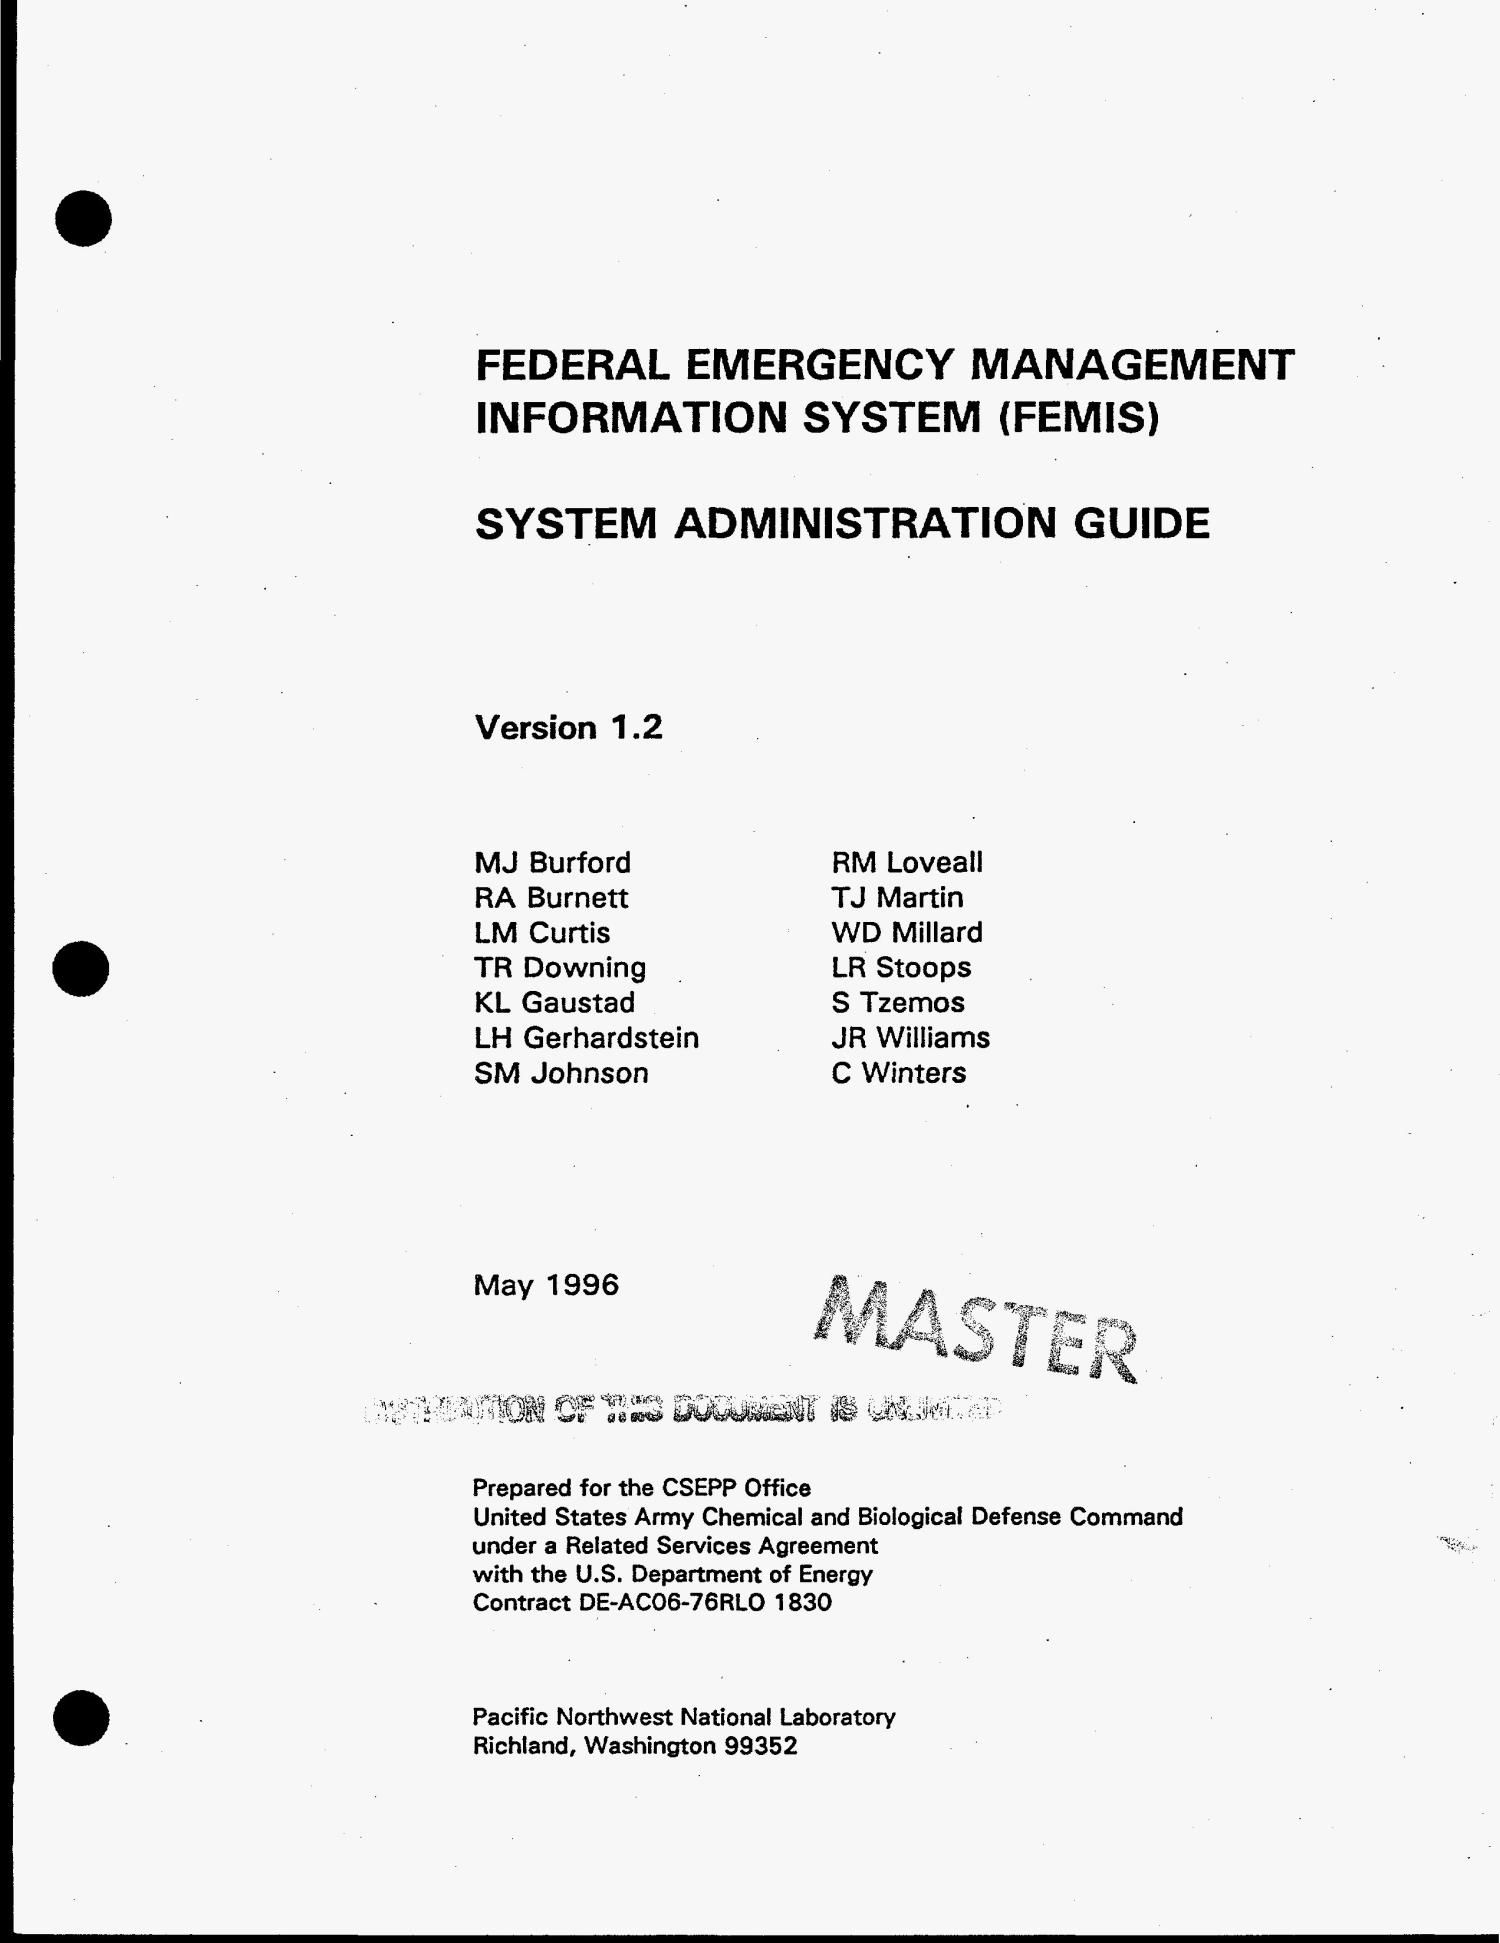 Federal Emergency Management Information System (FEMIS) system administration guide. Version 1.2                                                                                                      [Sequence #]: 2 of 226